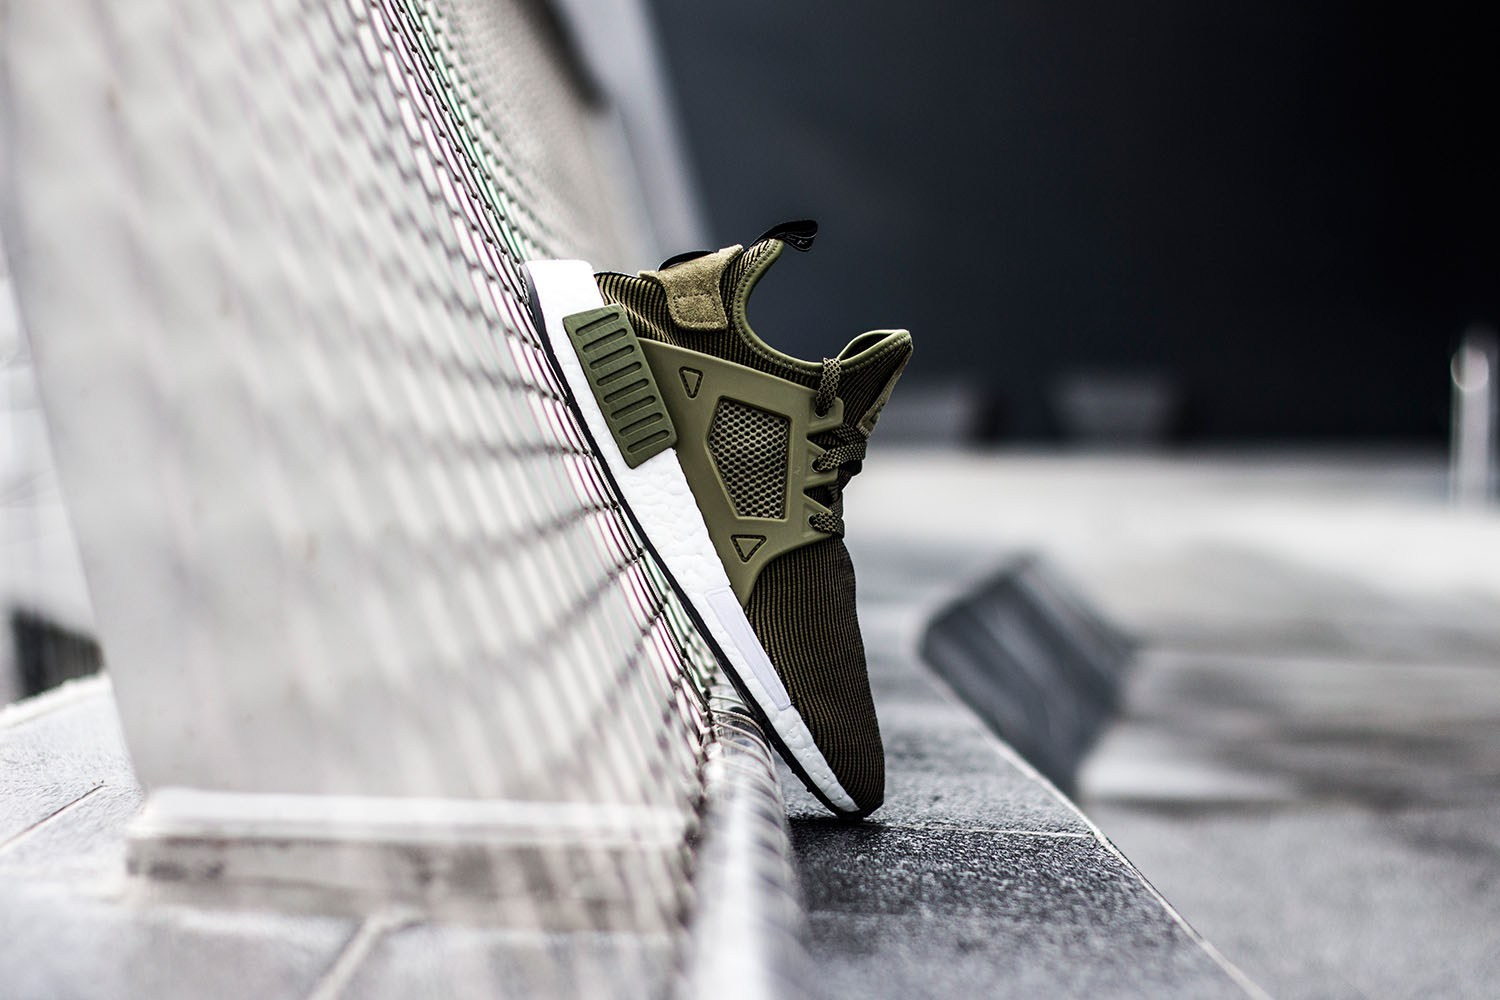 vwsgys kq6b6jki Discount Adidas Nmd Xr1 Release